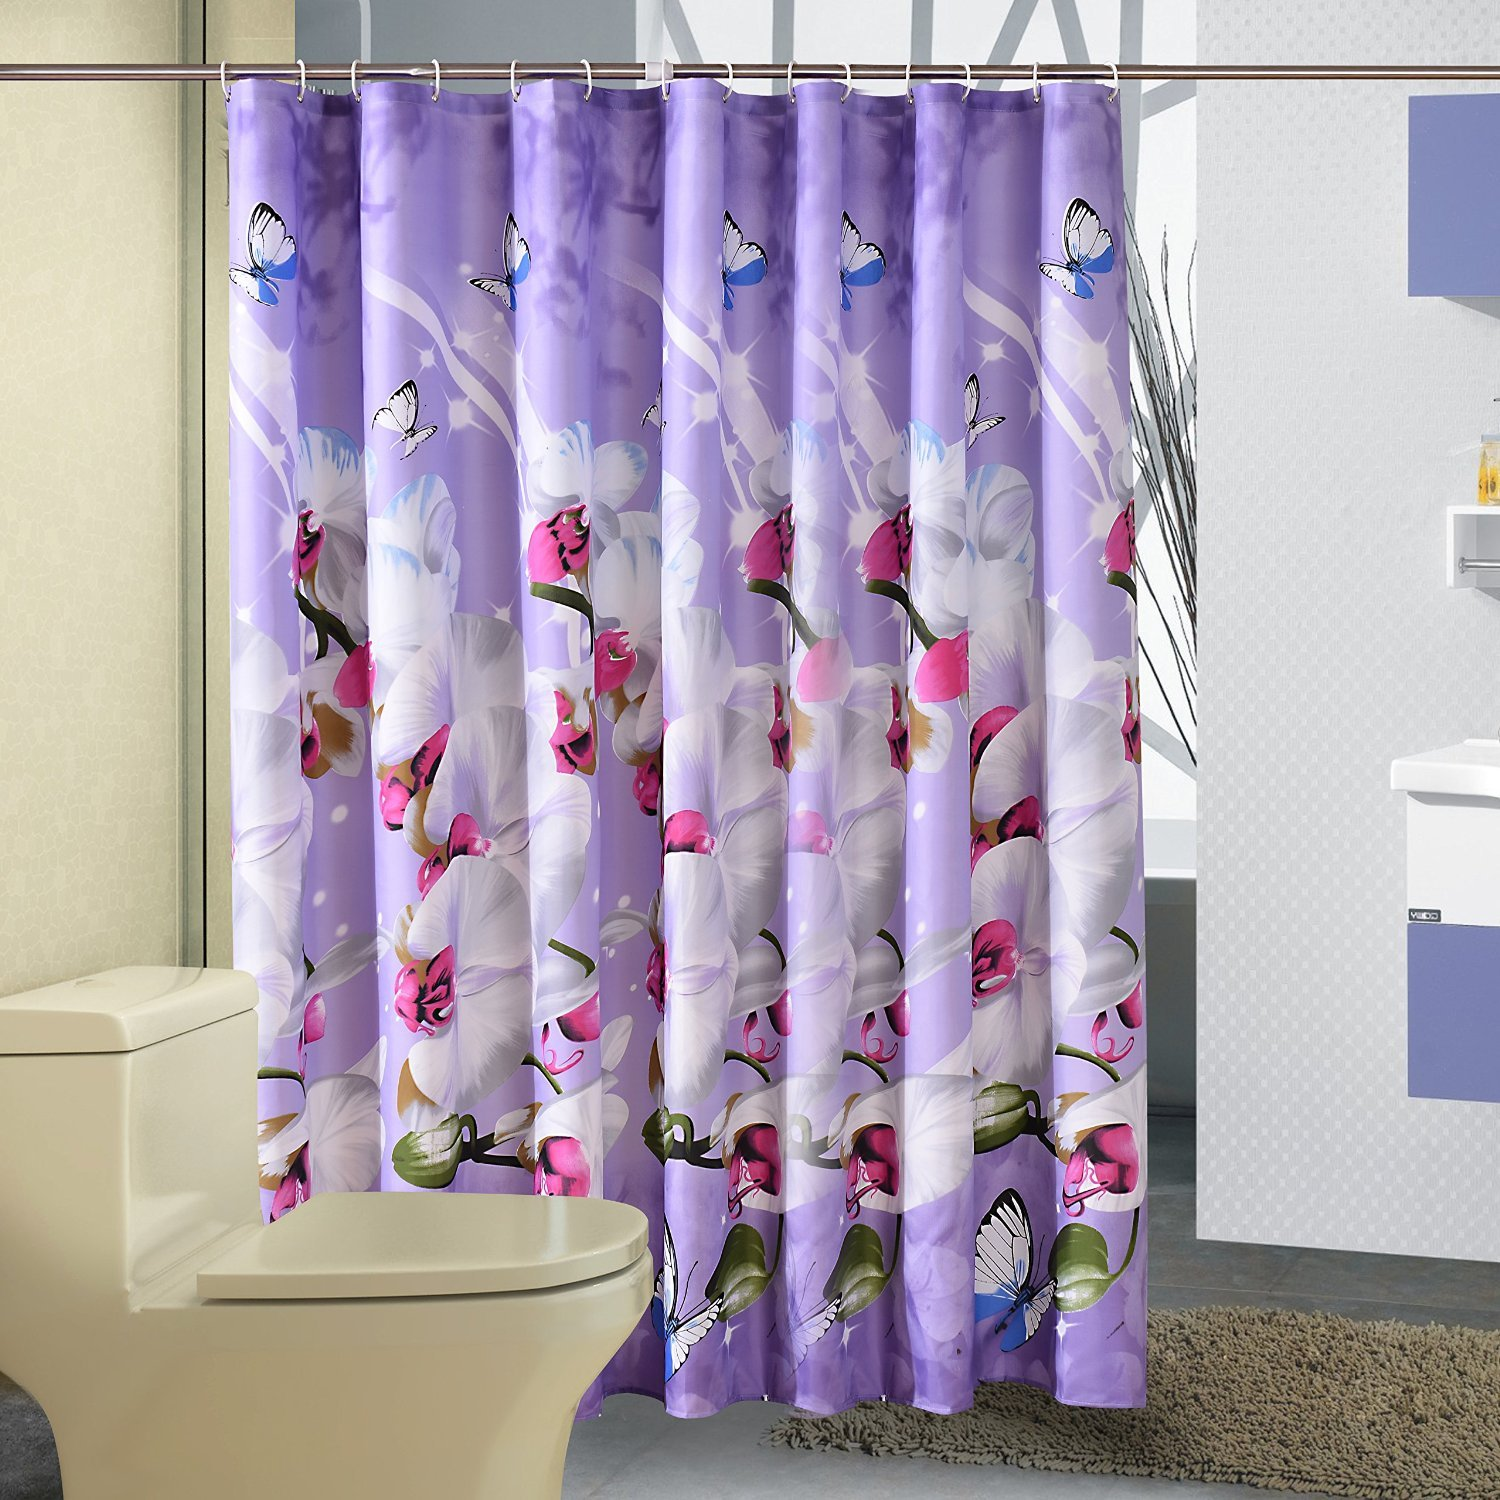 Shower Curtain W Hooks Flower And Butterfly Pattern